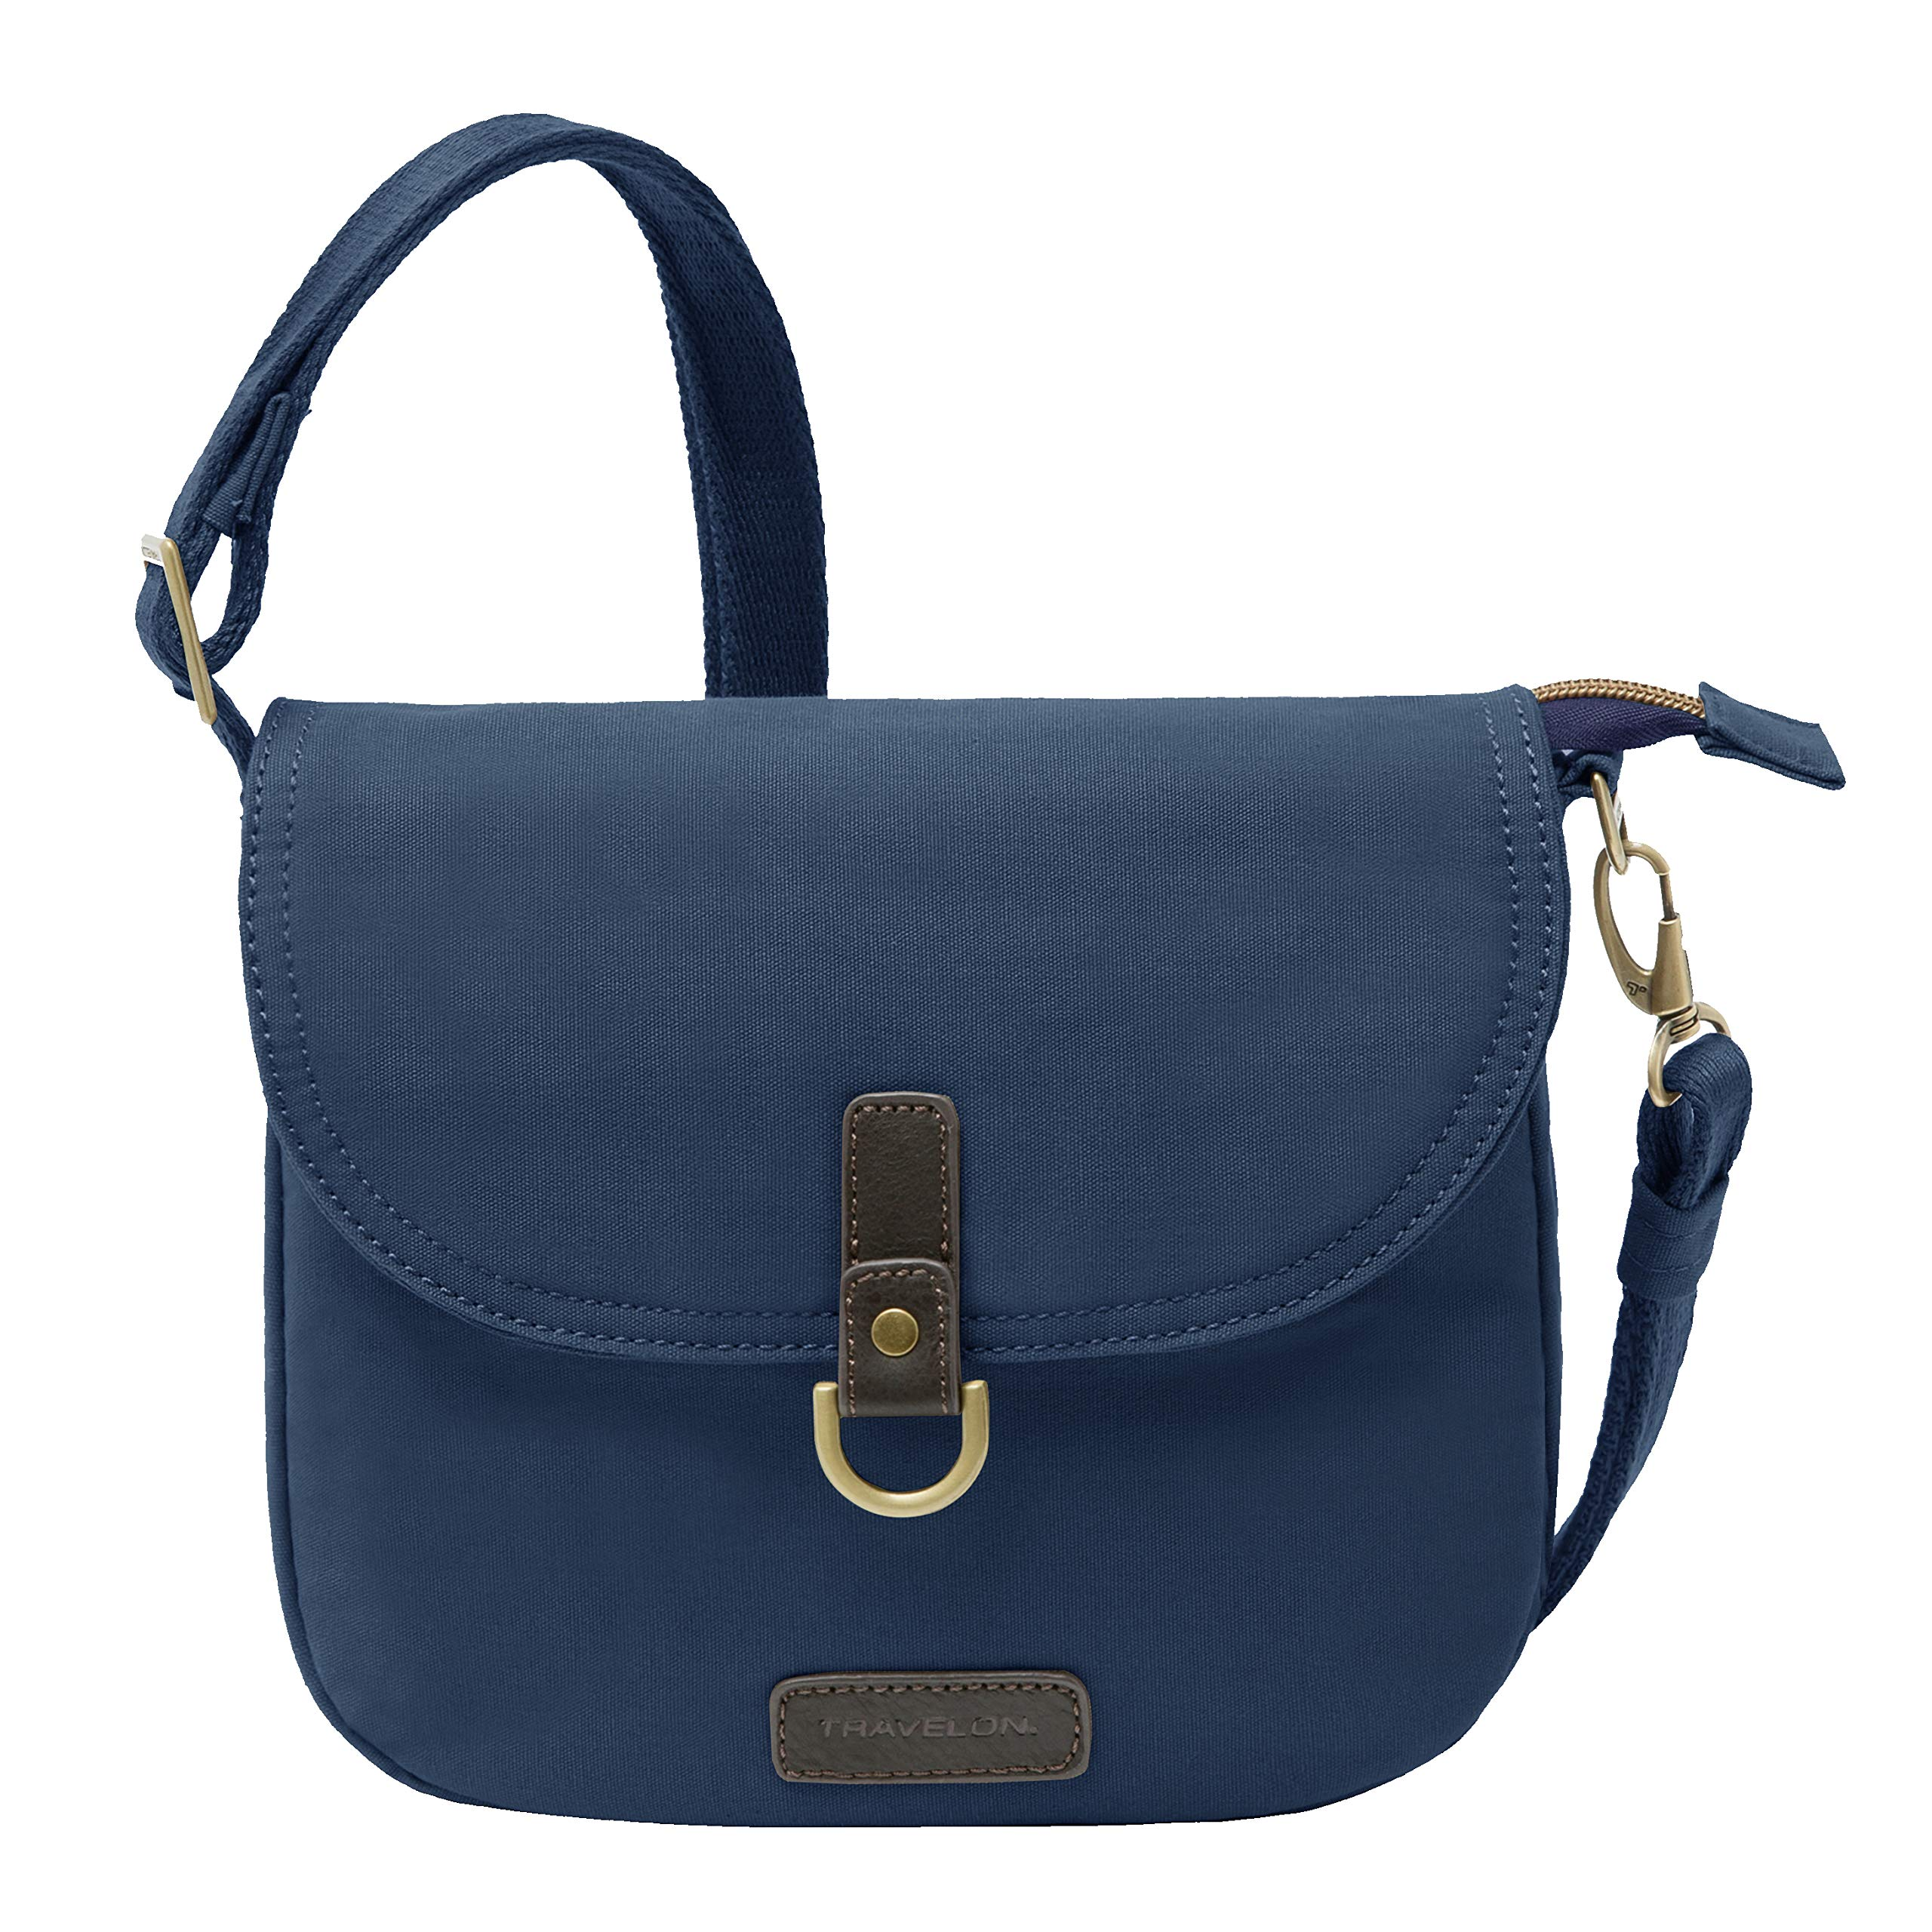 Travelon Anti-theft Courier Saddle Crossbody, Navy (blue) - 33419-350 - yrGear